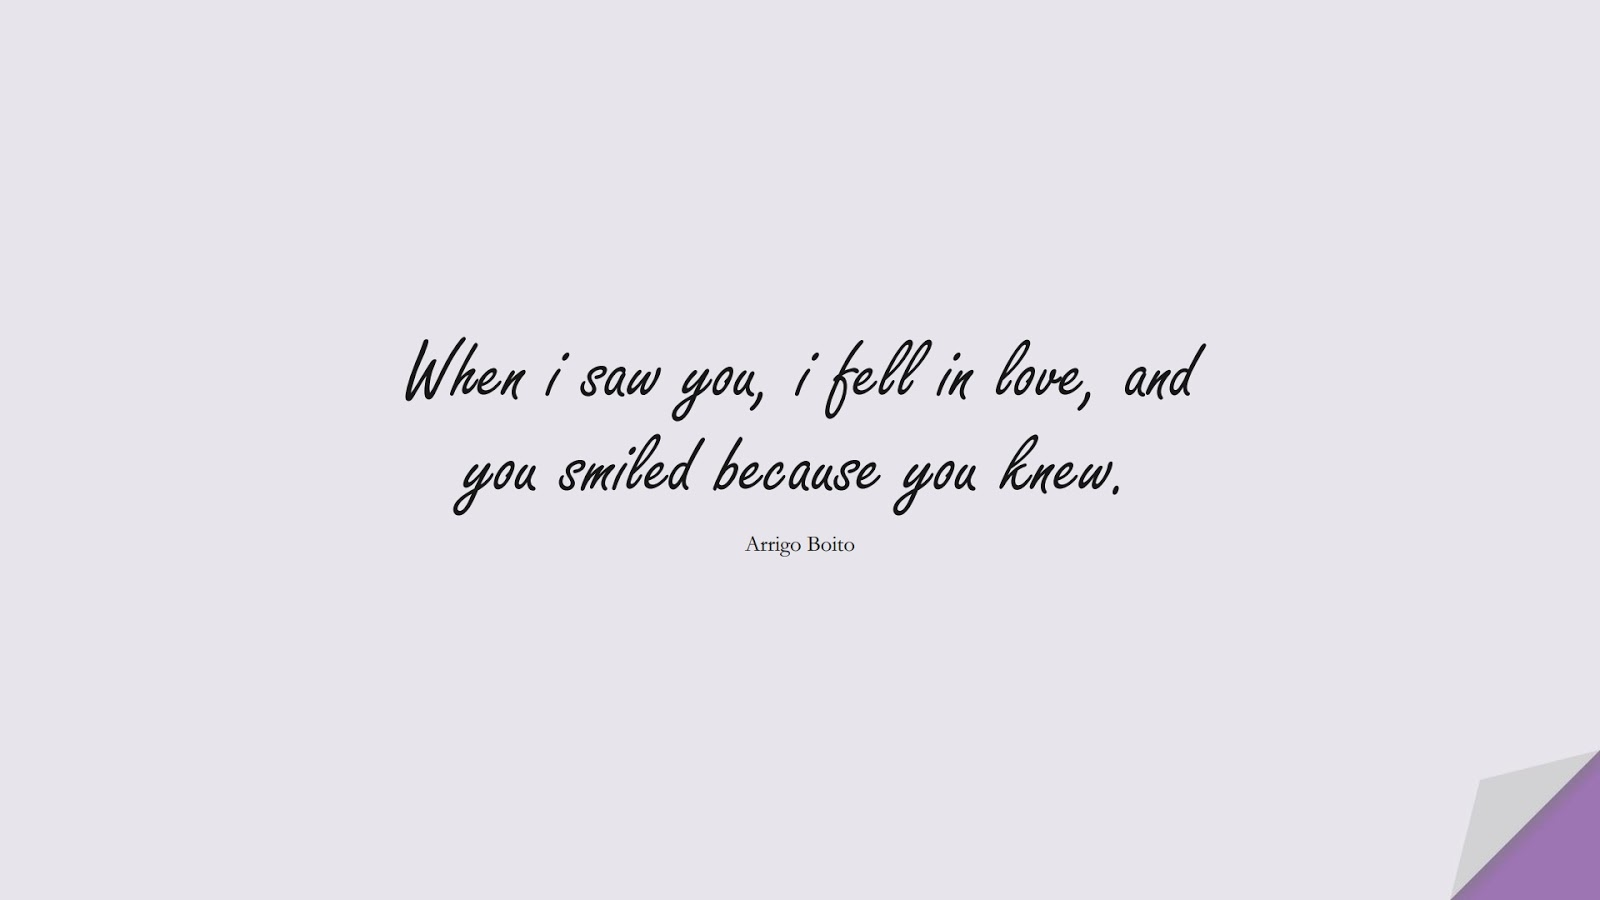 When i saw you, i fell in love, and you smiled because you knew. (Arrigo Boito);  #LoveQuotes